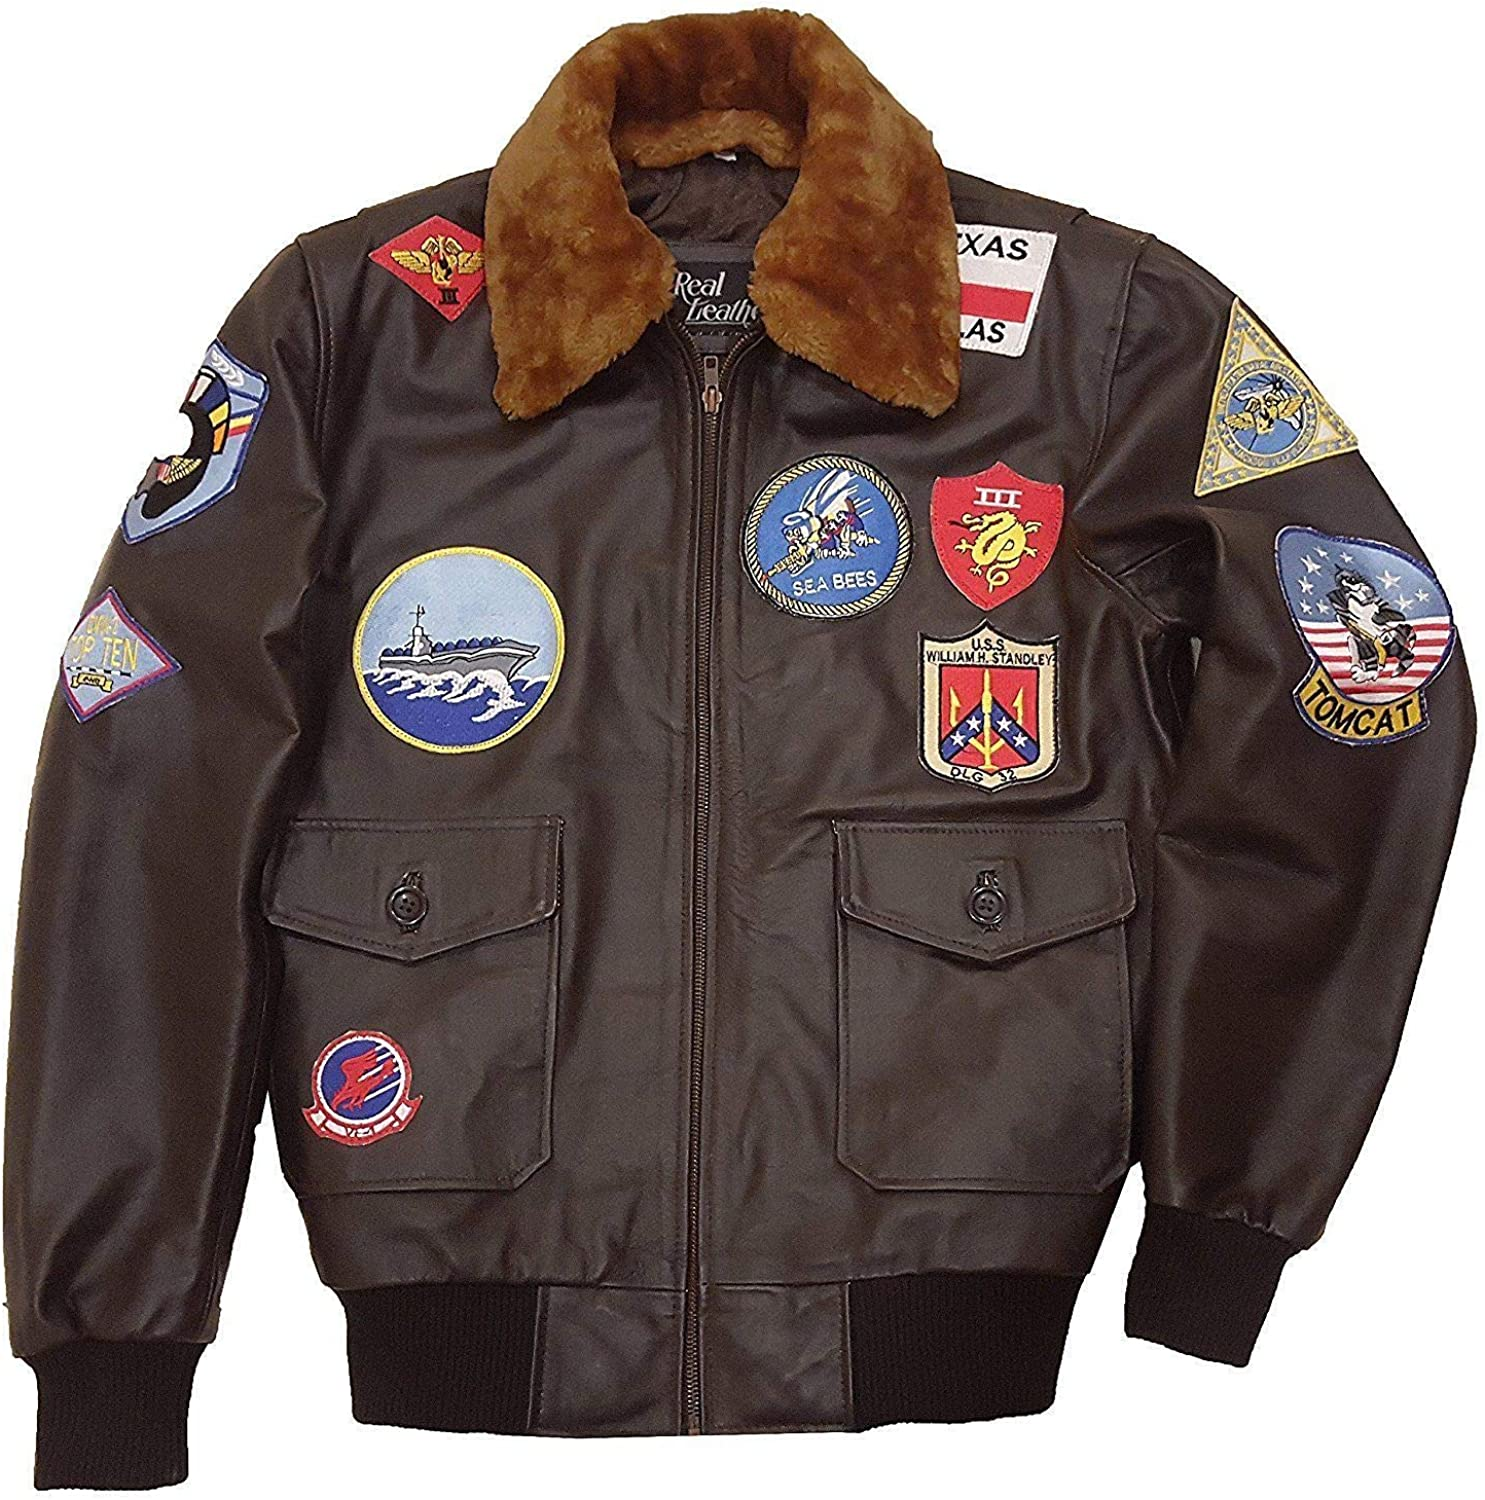 TOP Gun G-1 Navy Flight Tom Cruise's Traditional Pockets Brown Bomber Cowhide Leather Jacket